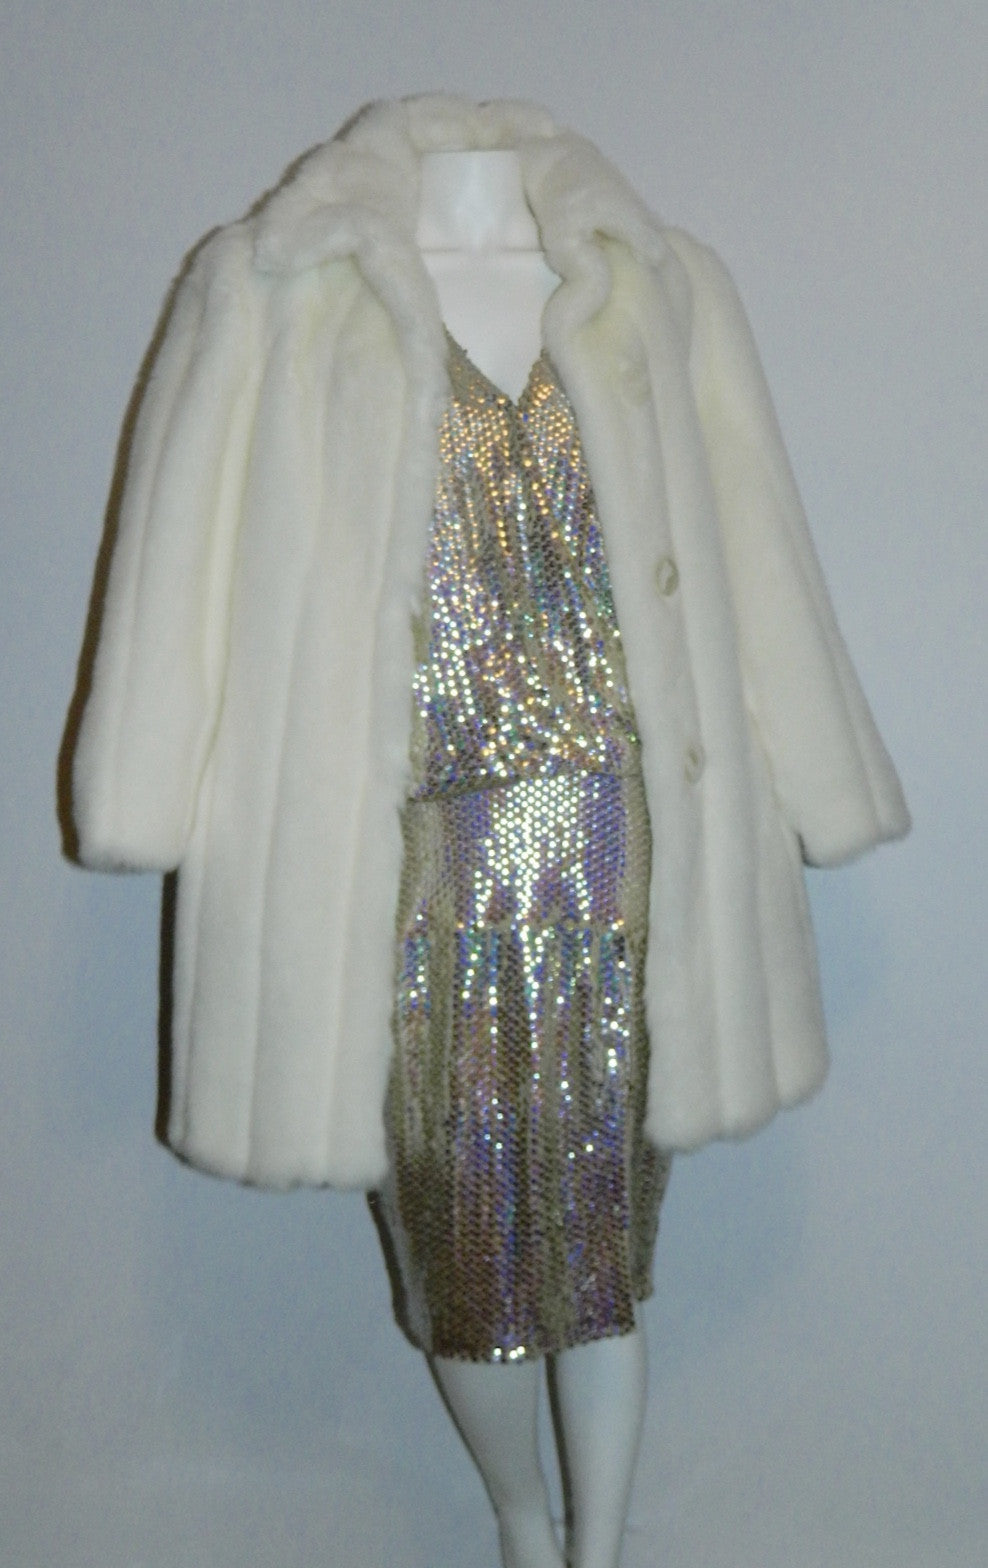 white faux fur coat 1980s vintage Oleg Cassini stroller length faux rabbit fur S - M